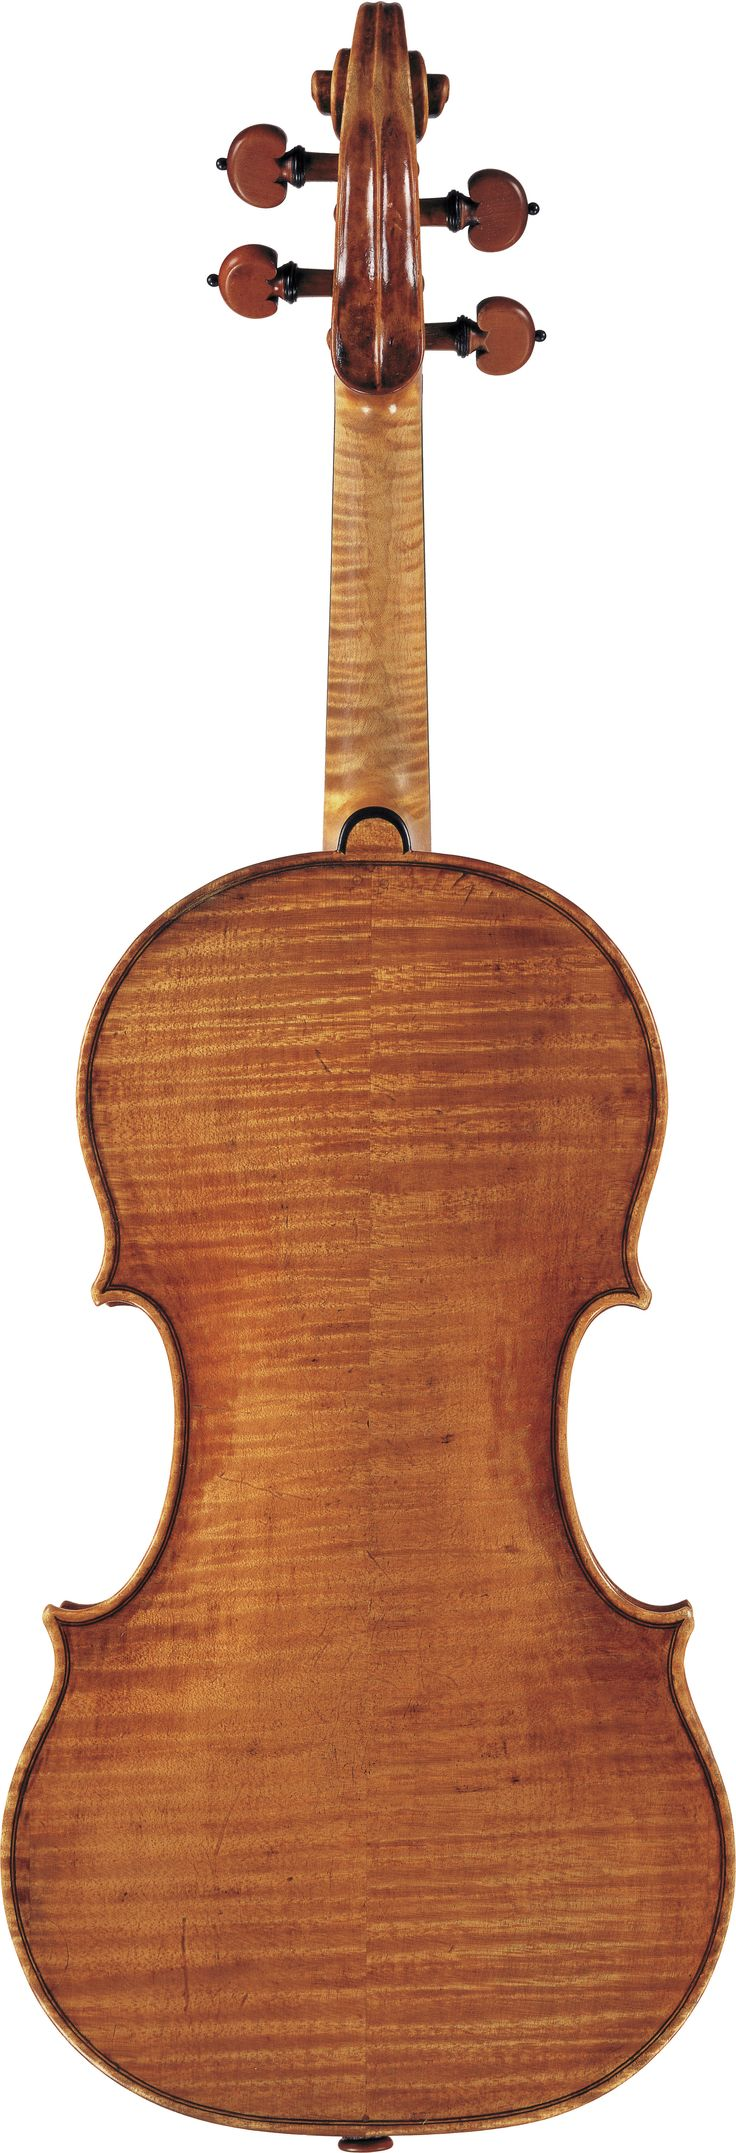 1693 Girolamo II Amati Violin with 352mm back from The Four Centuries Gallery